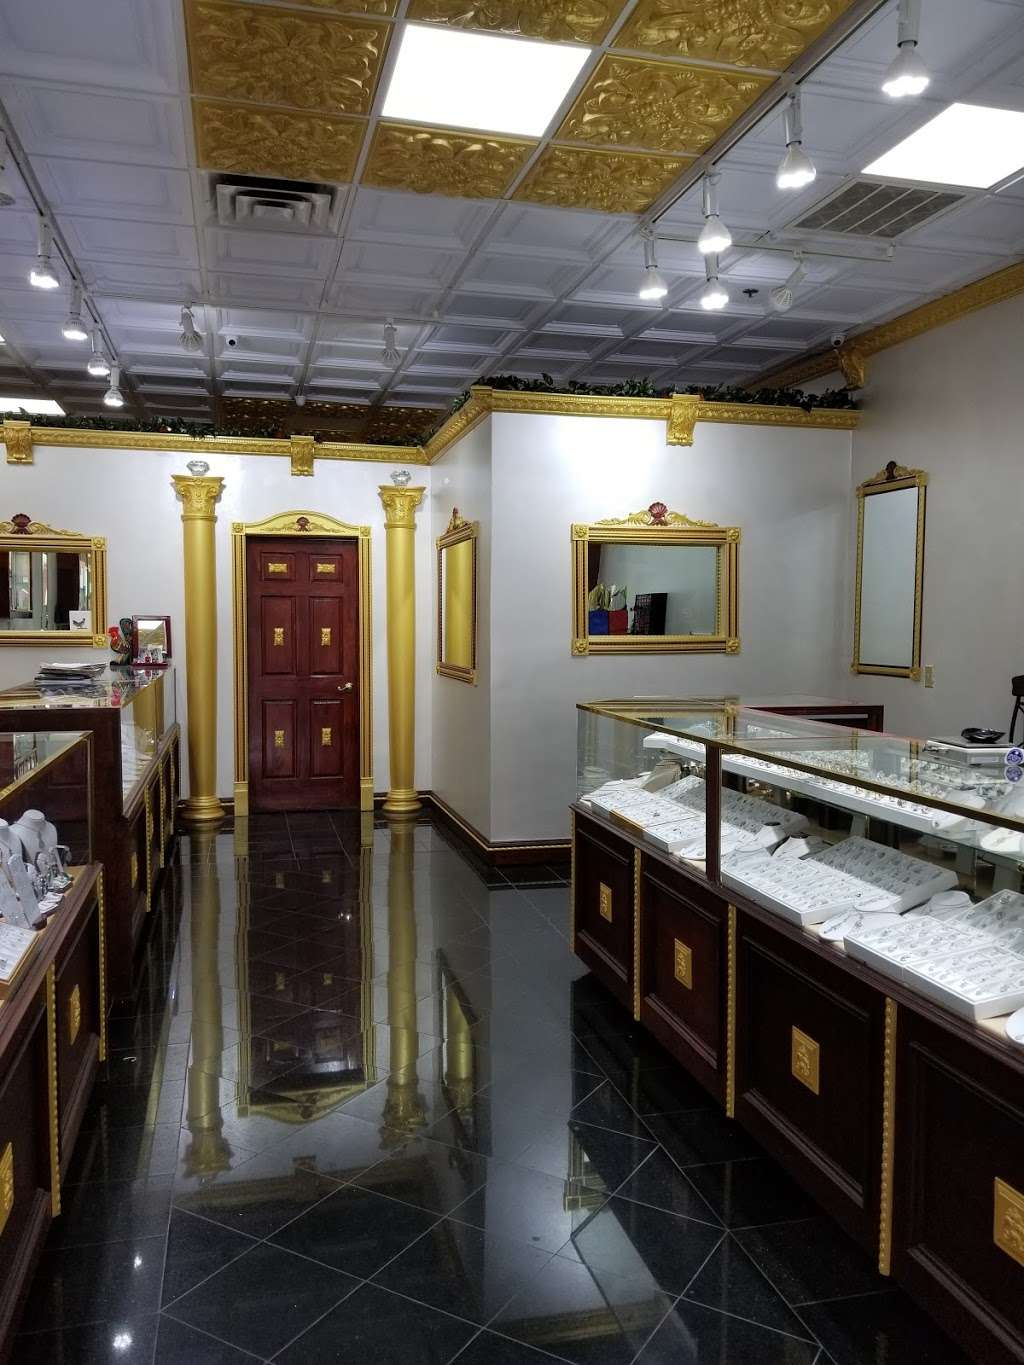 Edgewater Jewelry Exchange - jewelry store  | Photo 6 of 8 | Address: 515 River Rd, Edgewater, NJ 07020, USA | Phone: (201) 941-3041